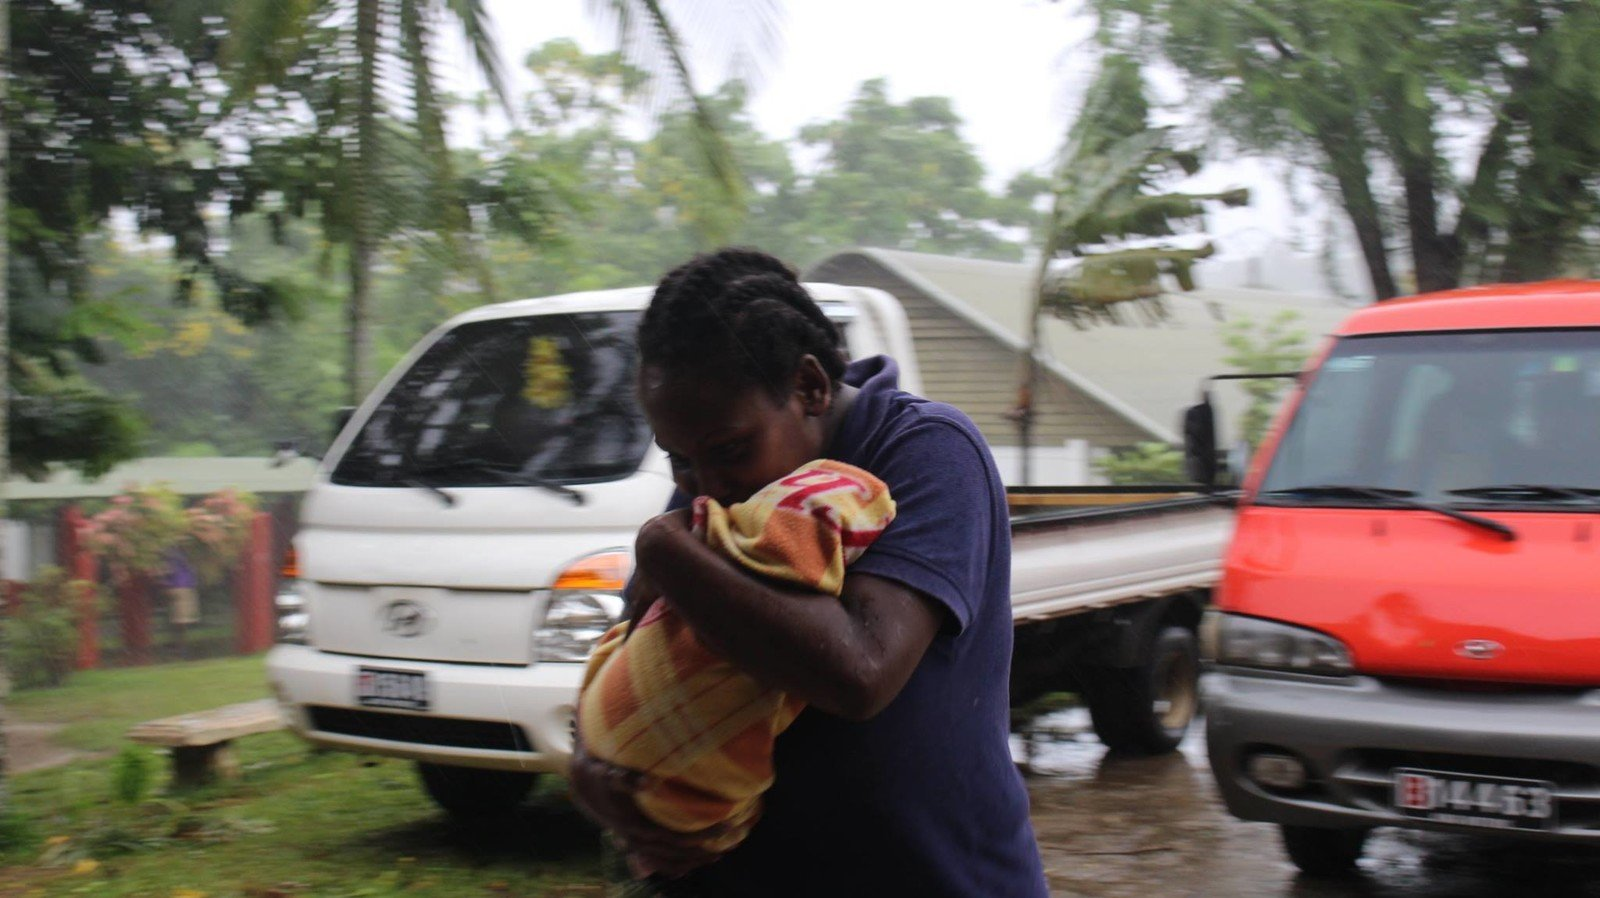 More than 250,000 people are at risk, after Cyclone Pam made a direct hit on Vanuatu on 14 March, tearing through the archipelago with winds of up to 250kmh. (IssoNihmei/350.org)